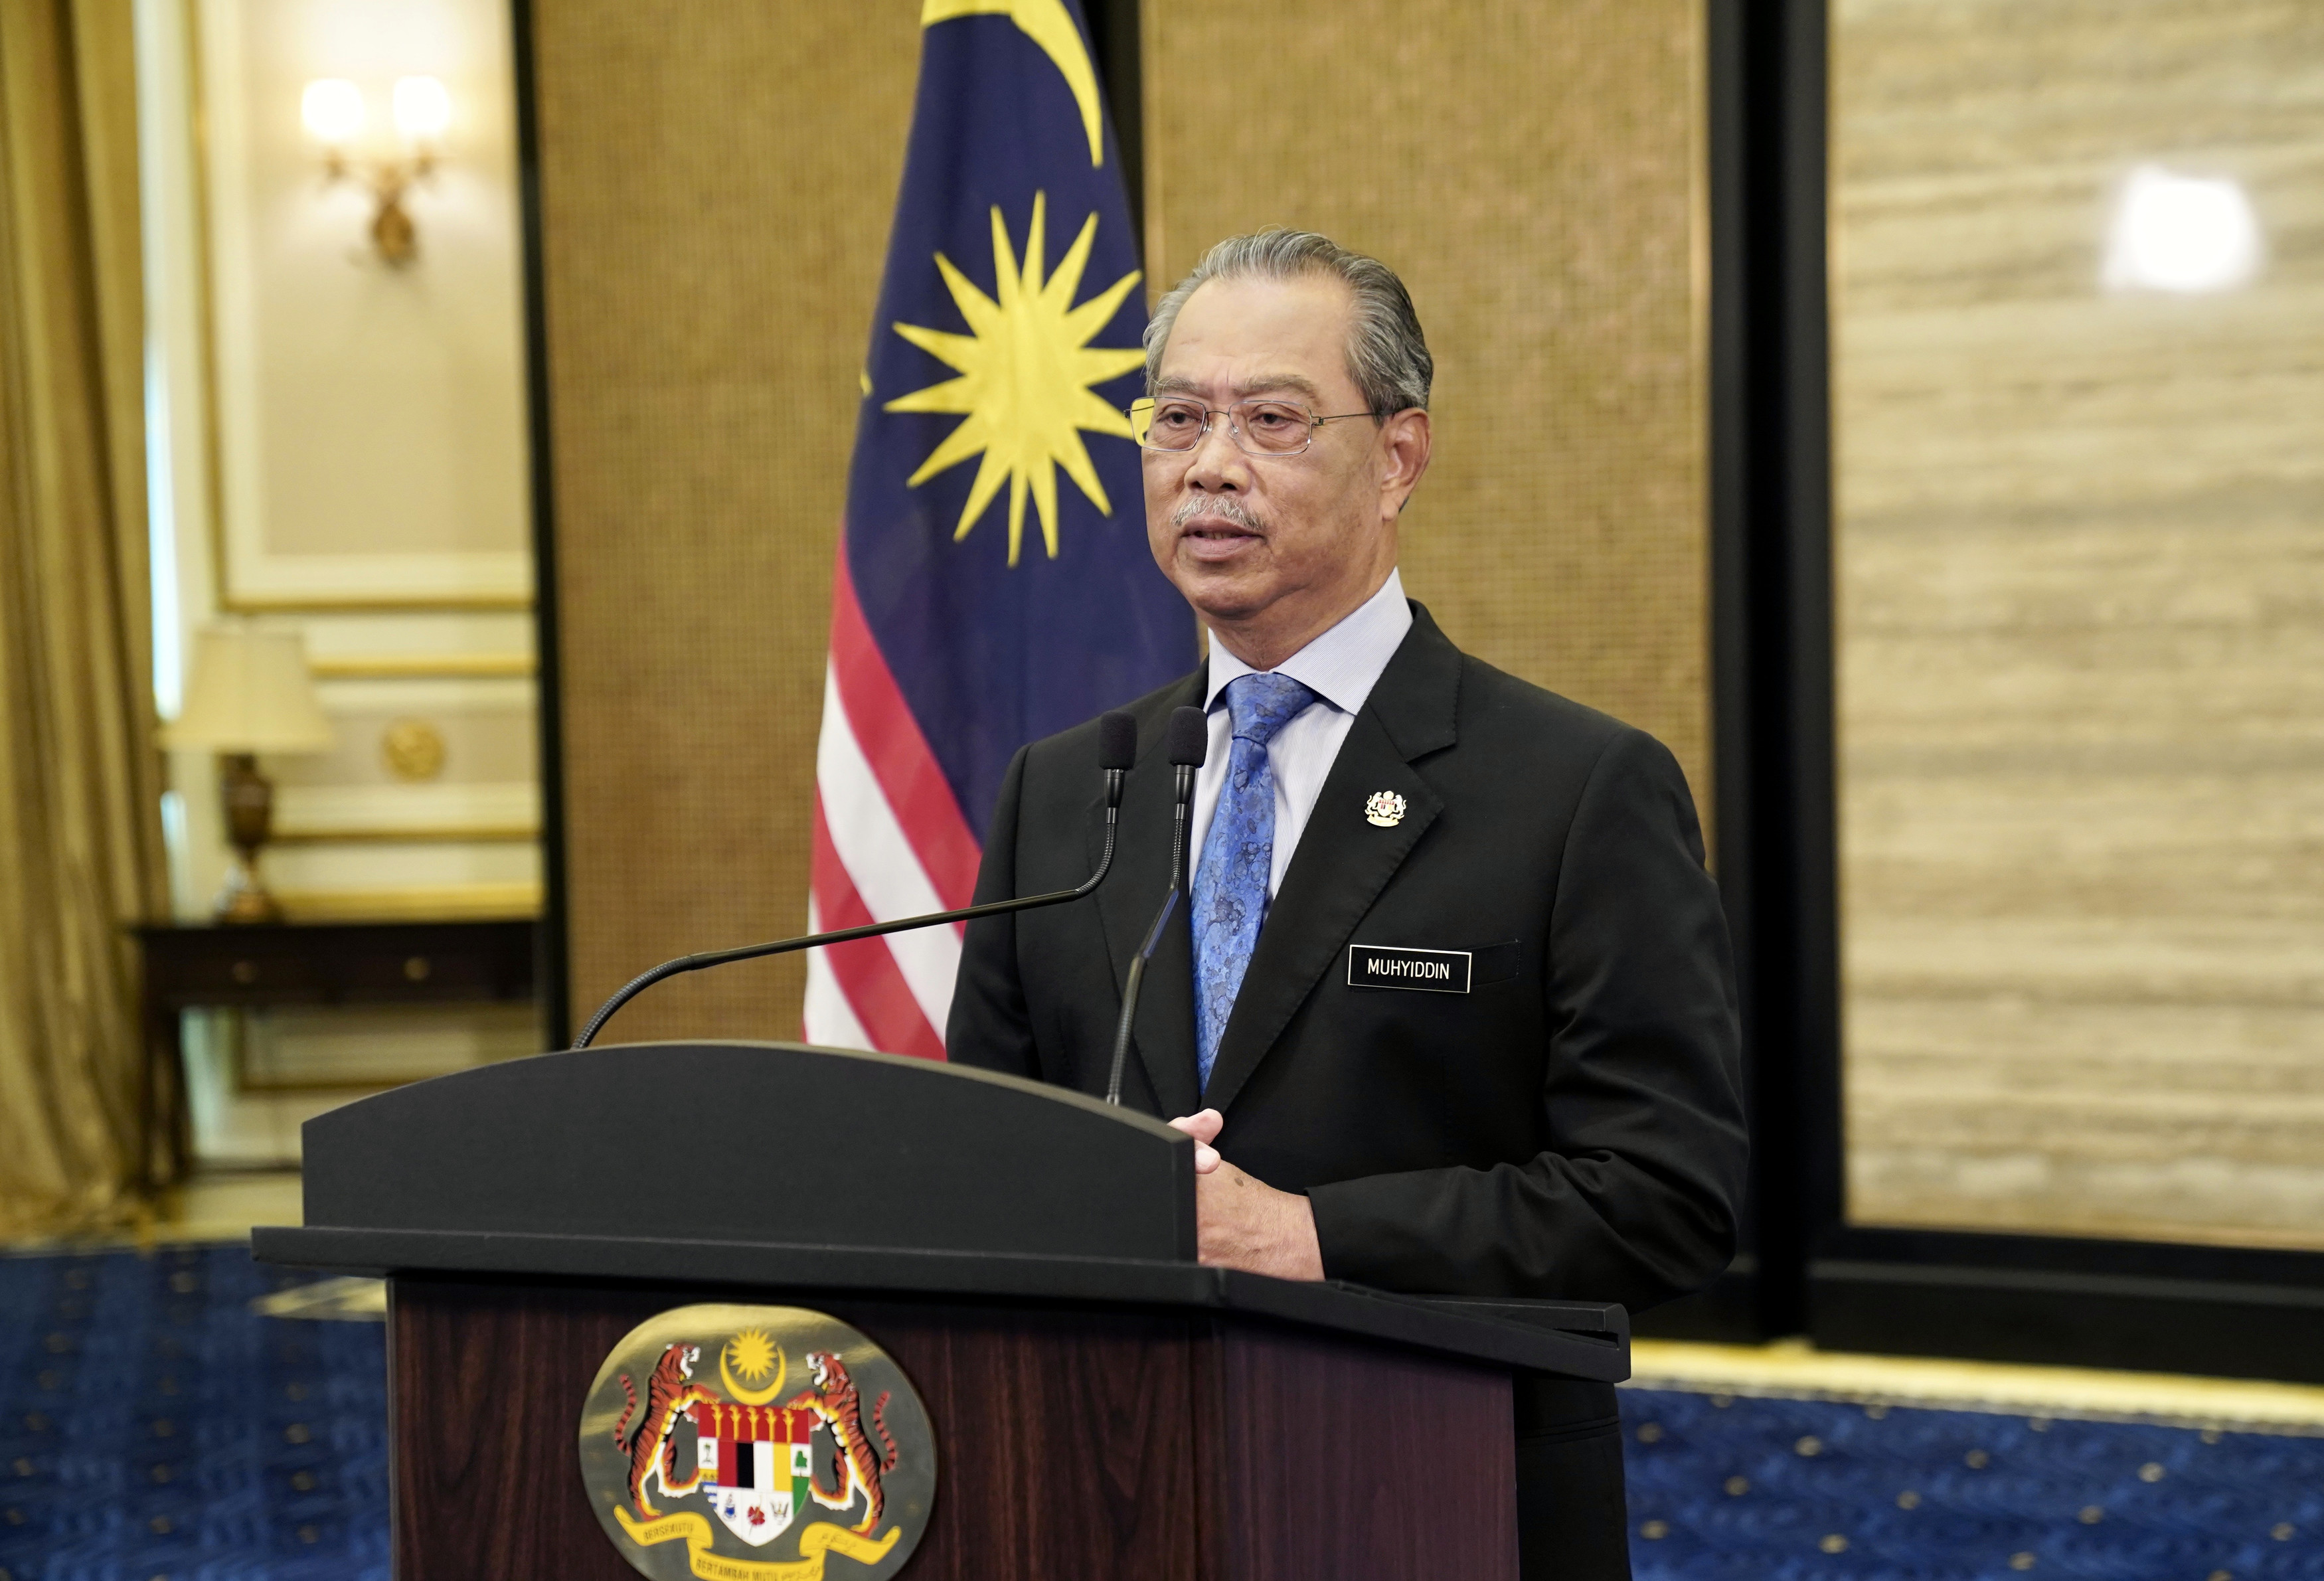 No Elections, By-Elections During COVID-19 Emergency – PM Muhyiddin